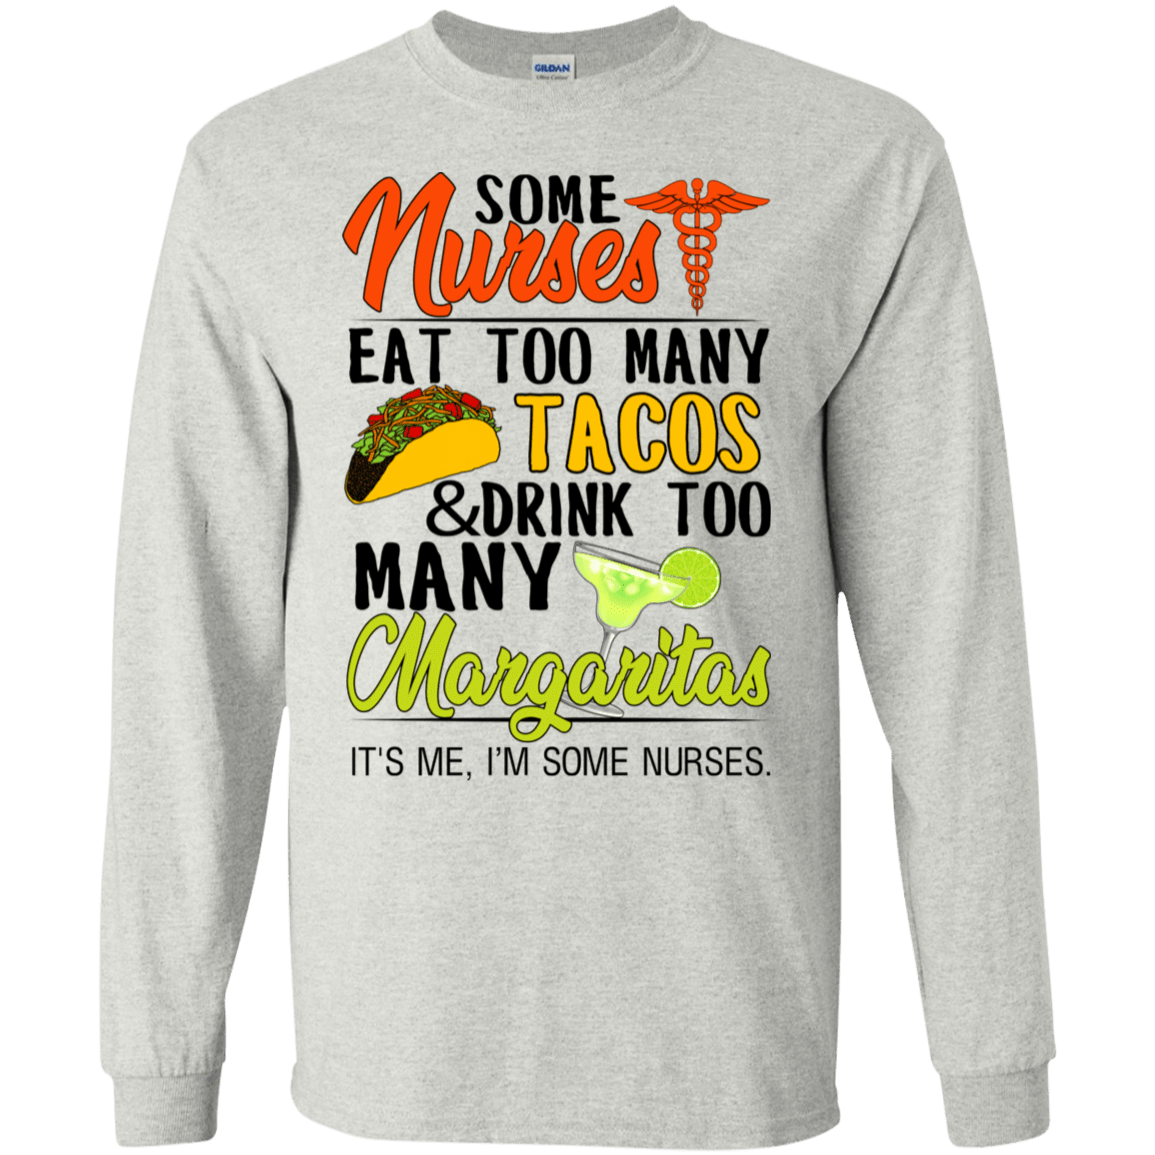 Some Nurses Eat Too Many Tacos & Drink Too Many Margaritas It's Me I'm Some Nurses T-Shirts & Hoodies 30-2112-76452265-10754 - Tee Ript